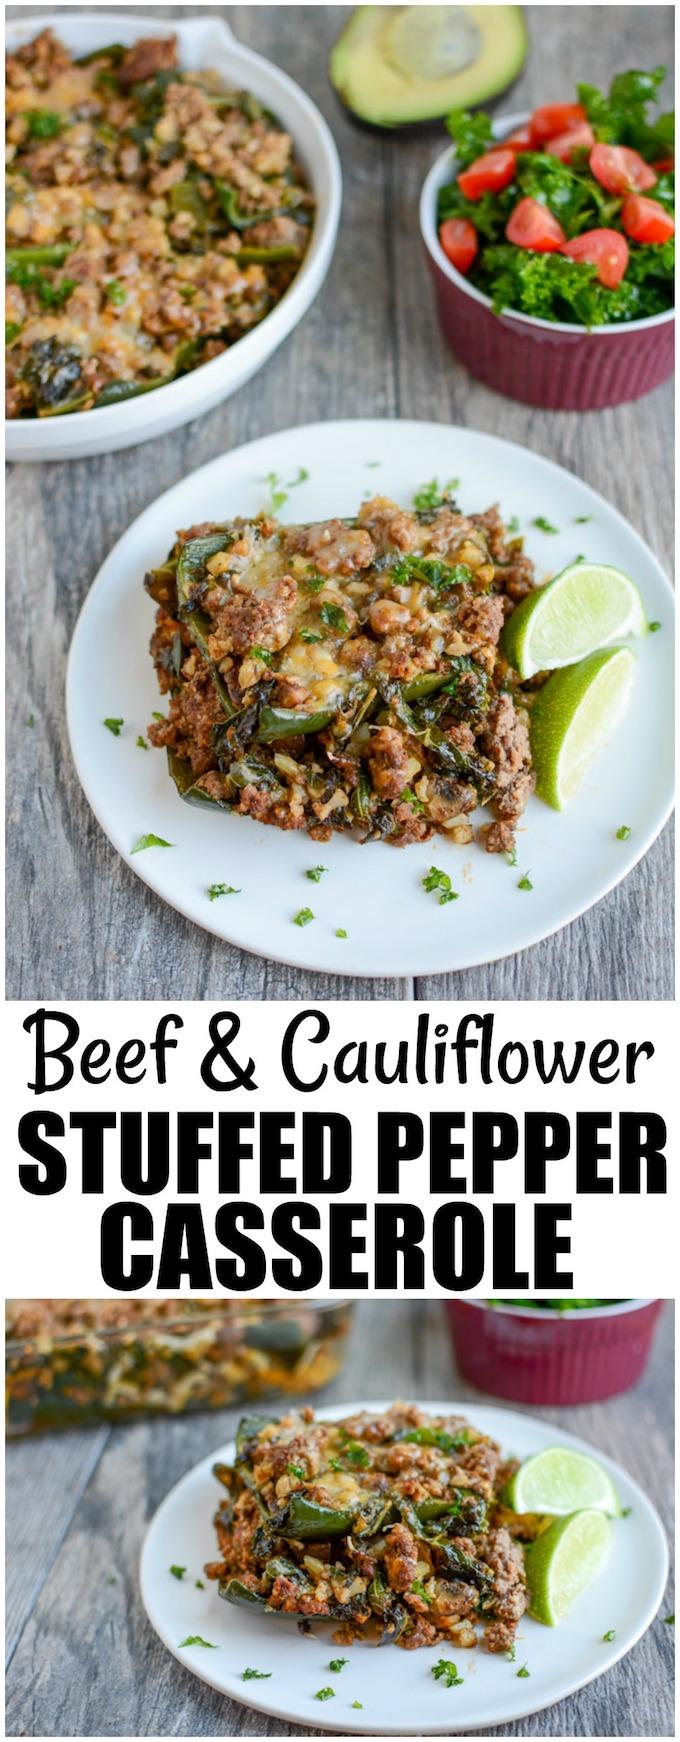 This gluten-free Beef and Cauliflower Stuffed Pepper Casserole is a low-carb dinner recipe that's also great for lunch! A flavorful mixture of ground beef and cauliflower rice is layered with cheese and poblano peppers instead of stuffed into traditional bell peppers.